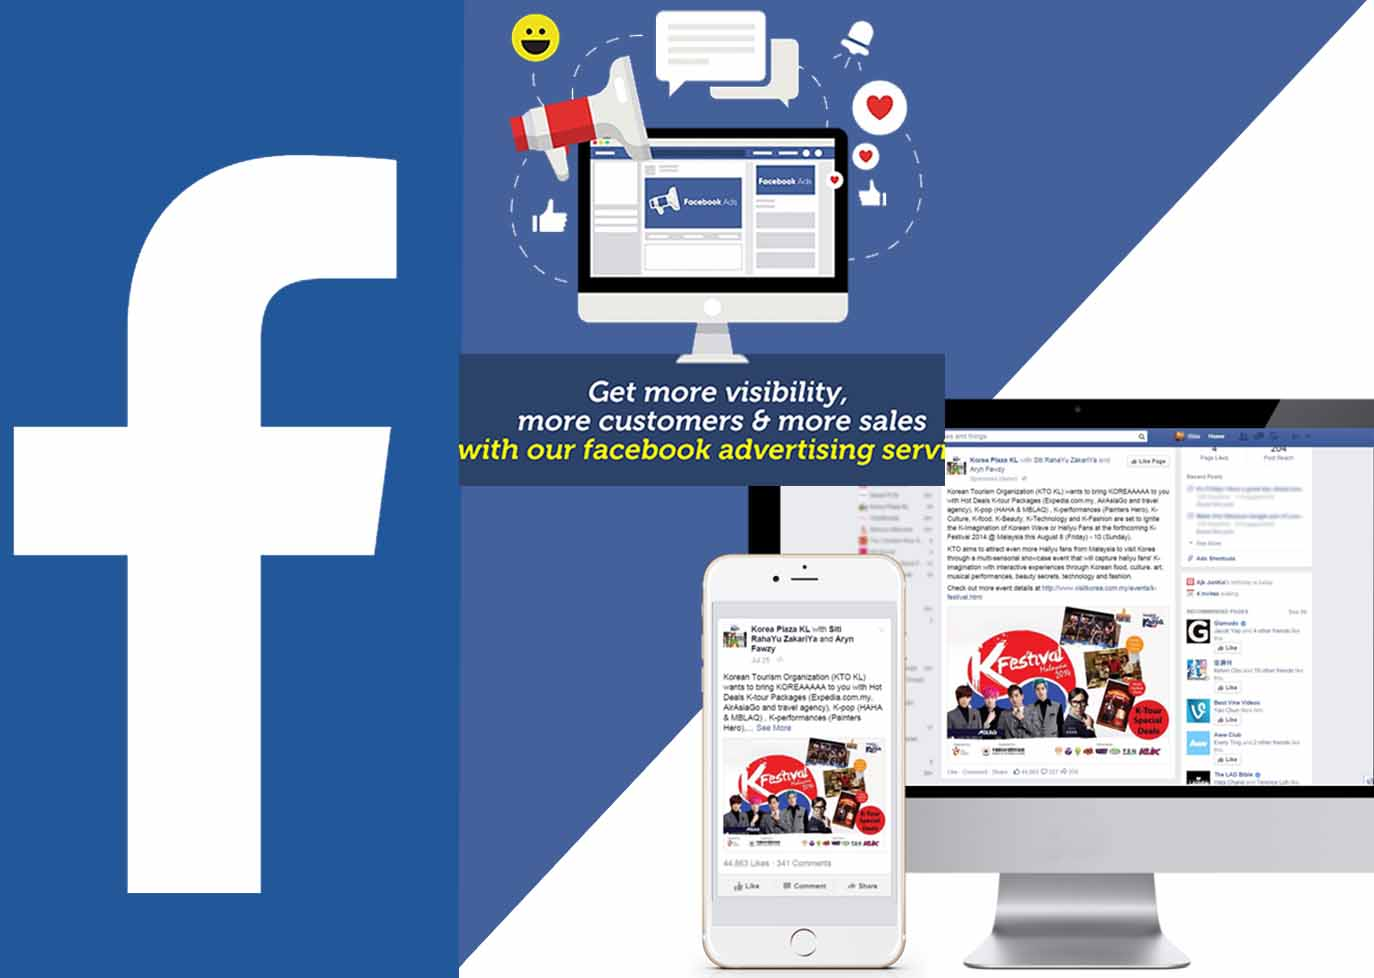 Facebook Advertising Service – Facebook Advertising Experts | Facebook Advertising Support